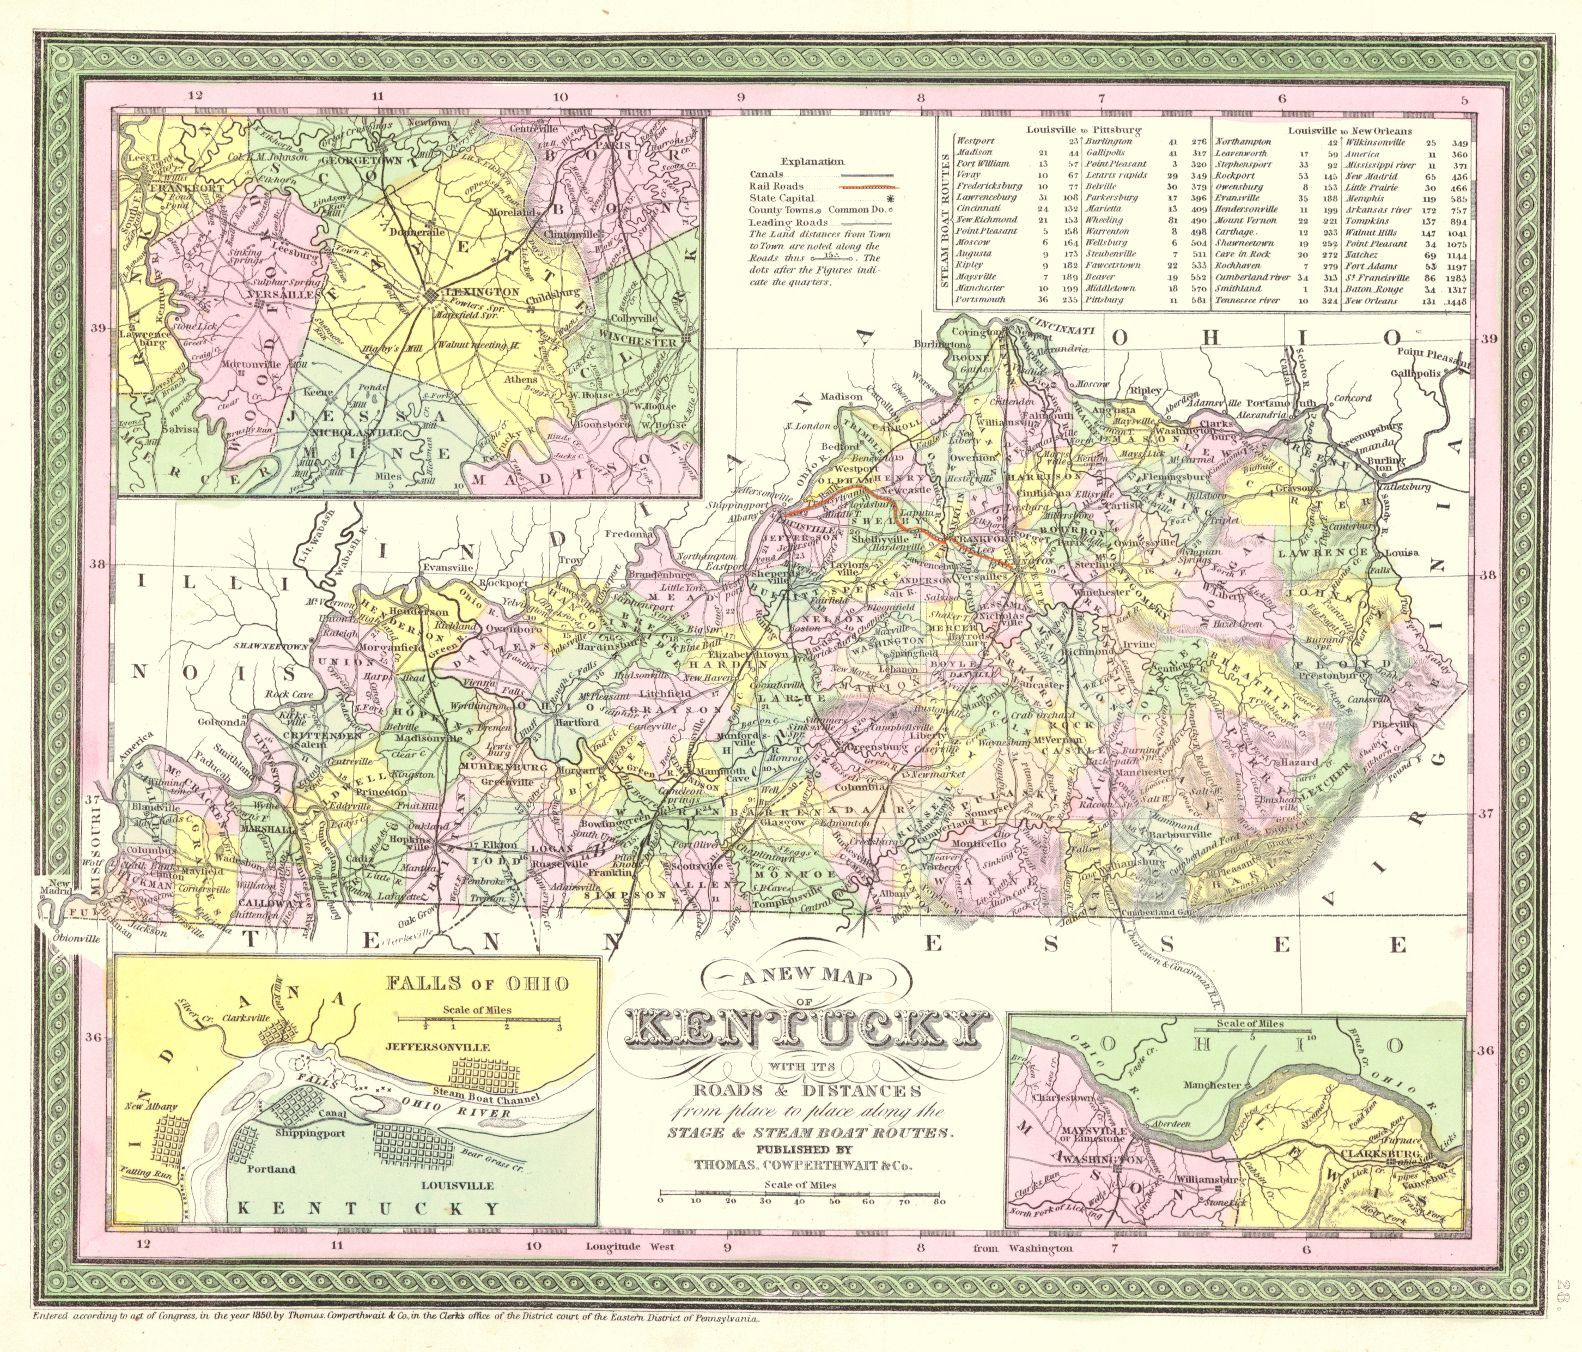 A New Map of Kentucky With Its Roads & Distances from Place to Place ...